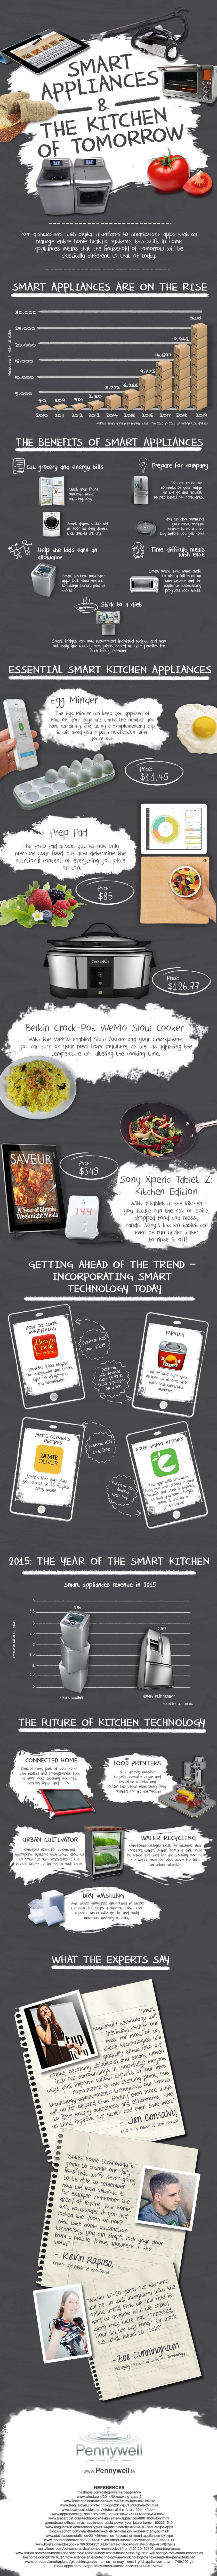 Smart Appliances and Kitchen of Tomorrow Infographic